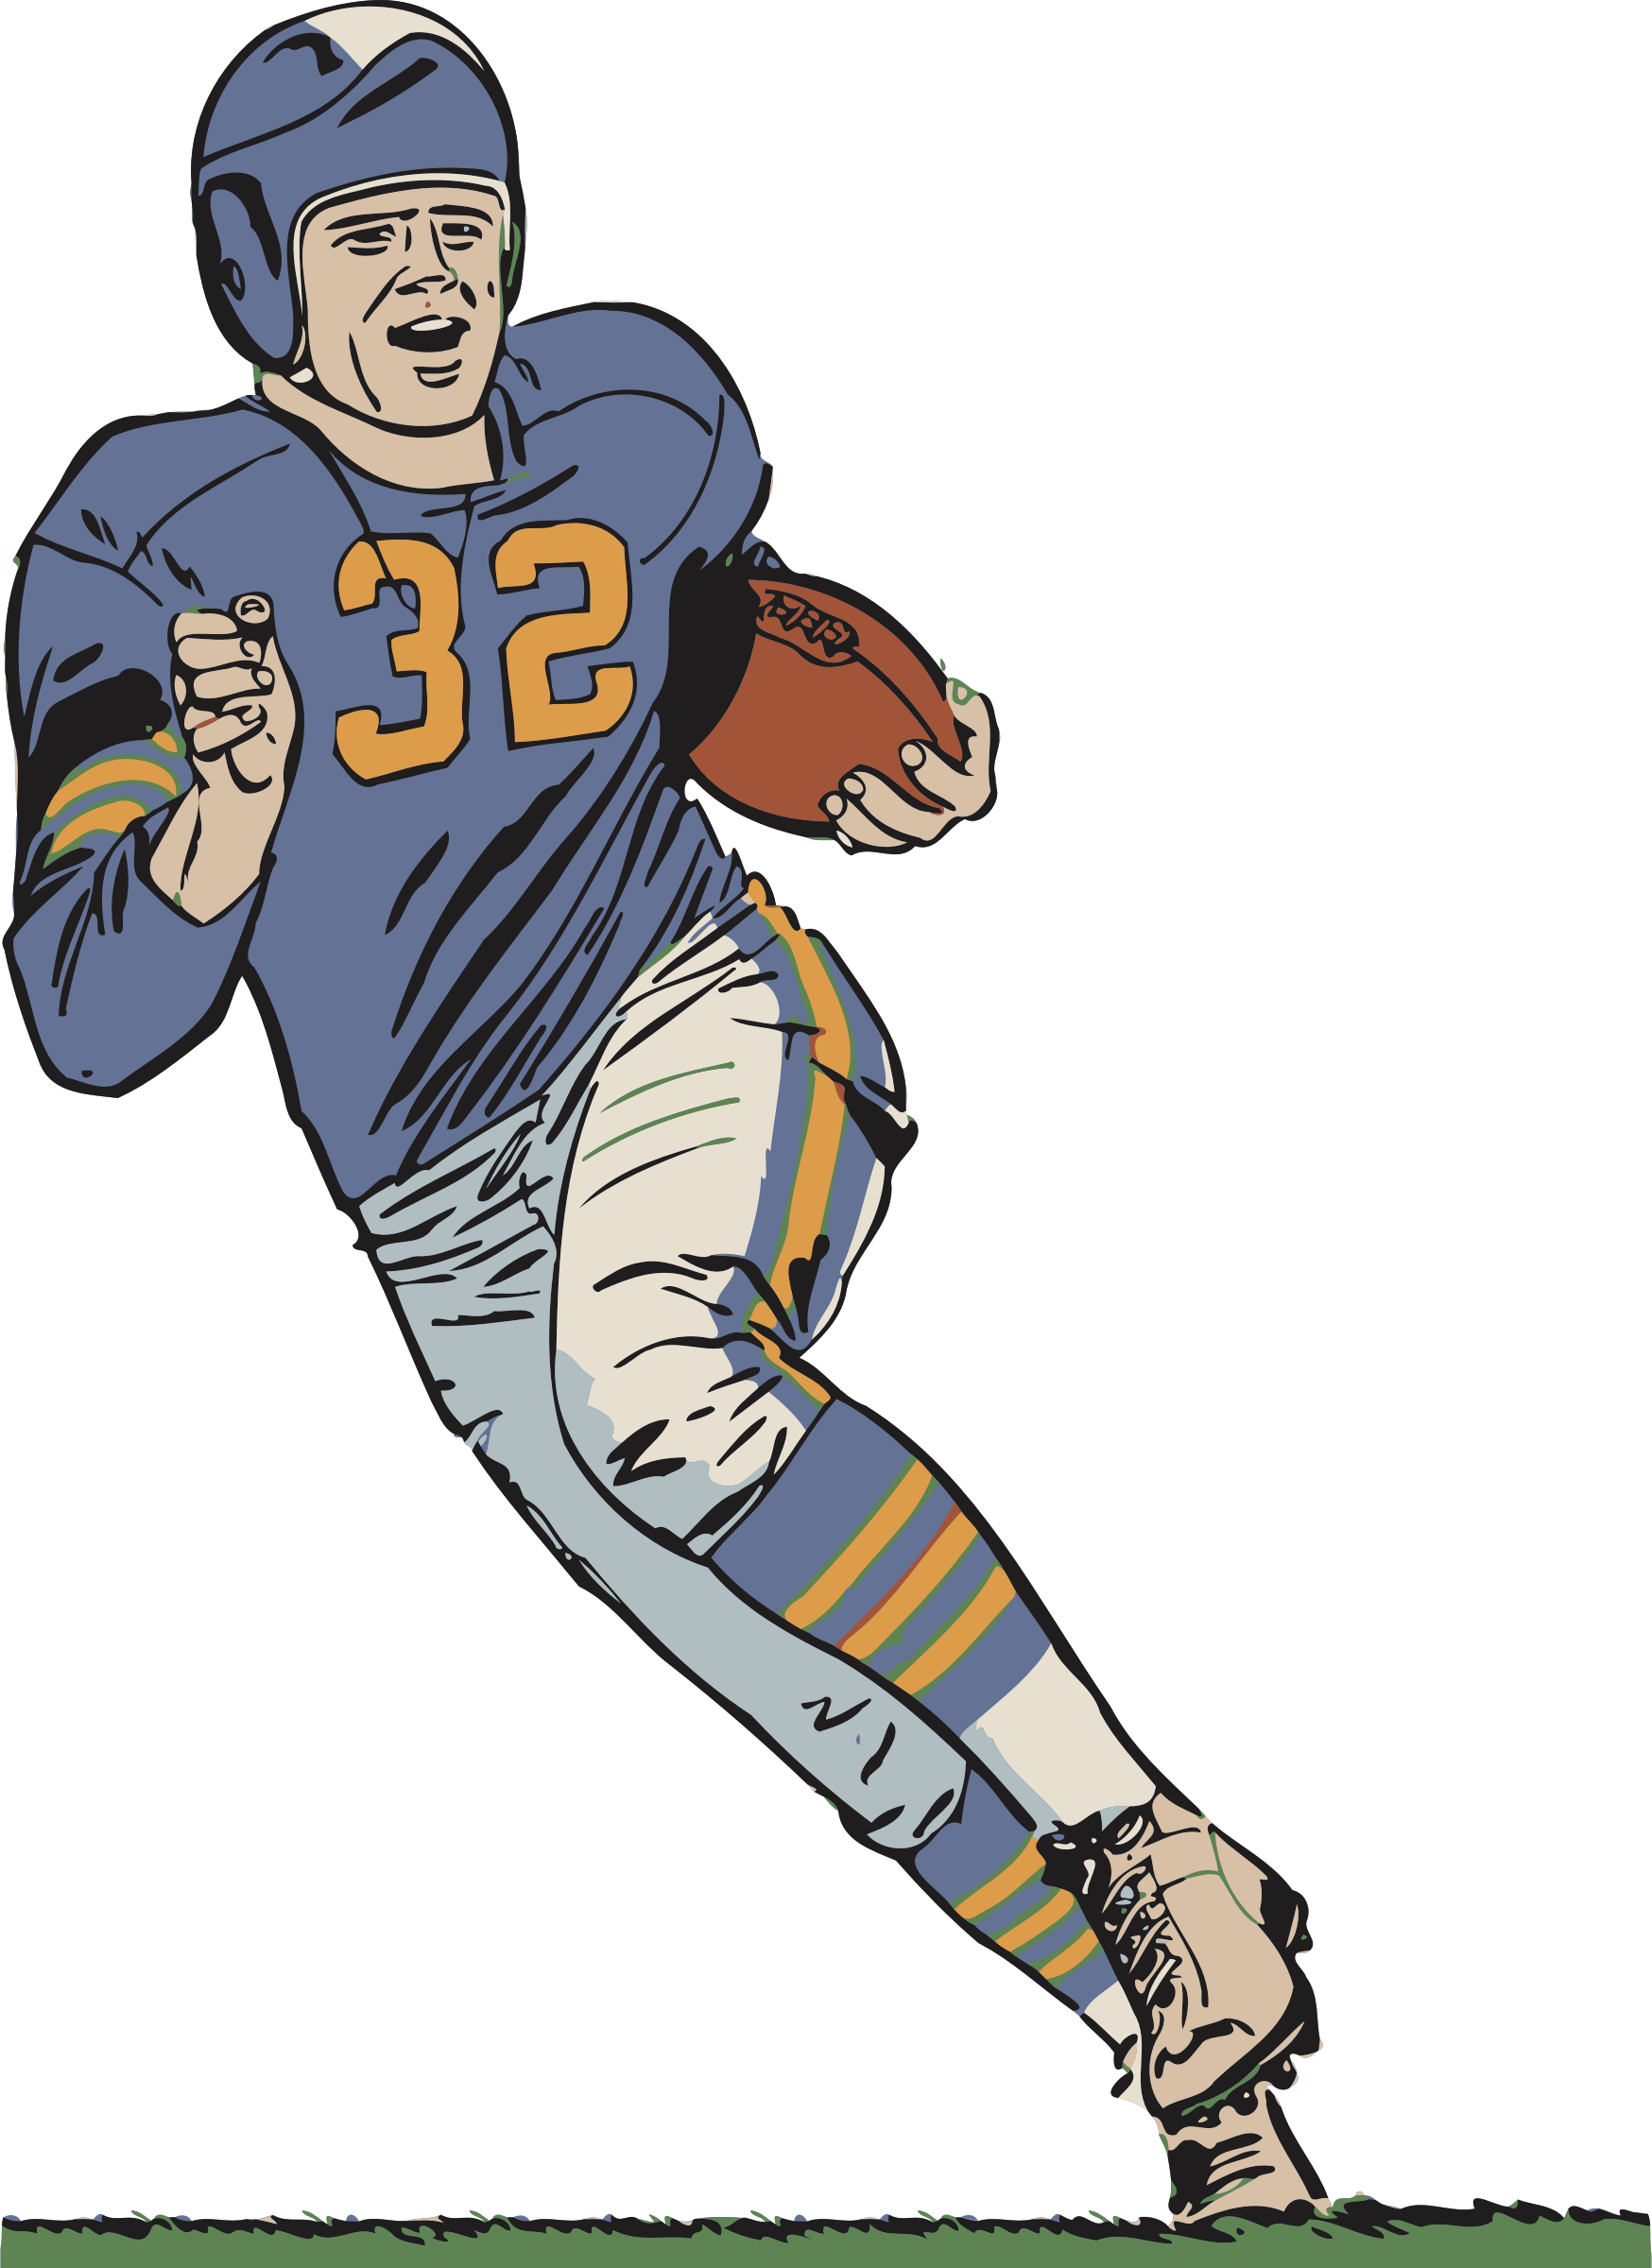 Clipart football player jpg library Clipart - Football player jpg library